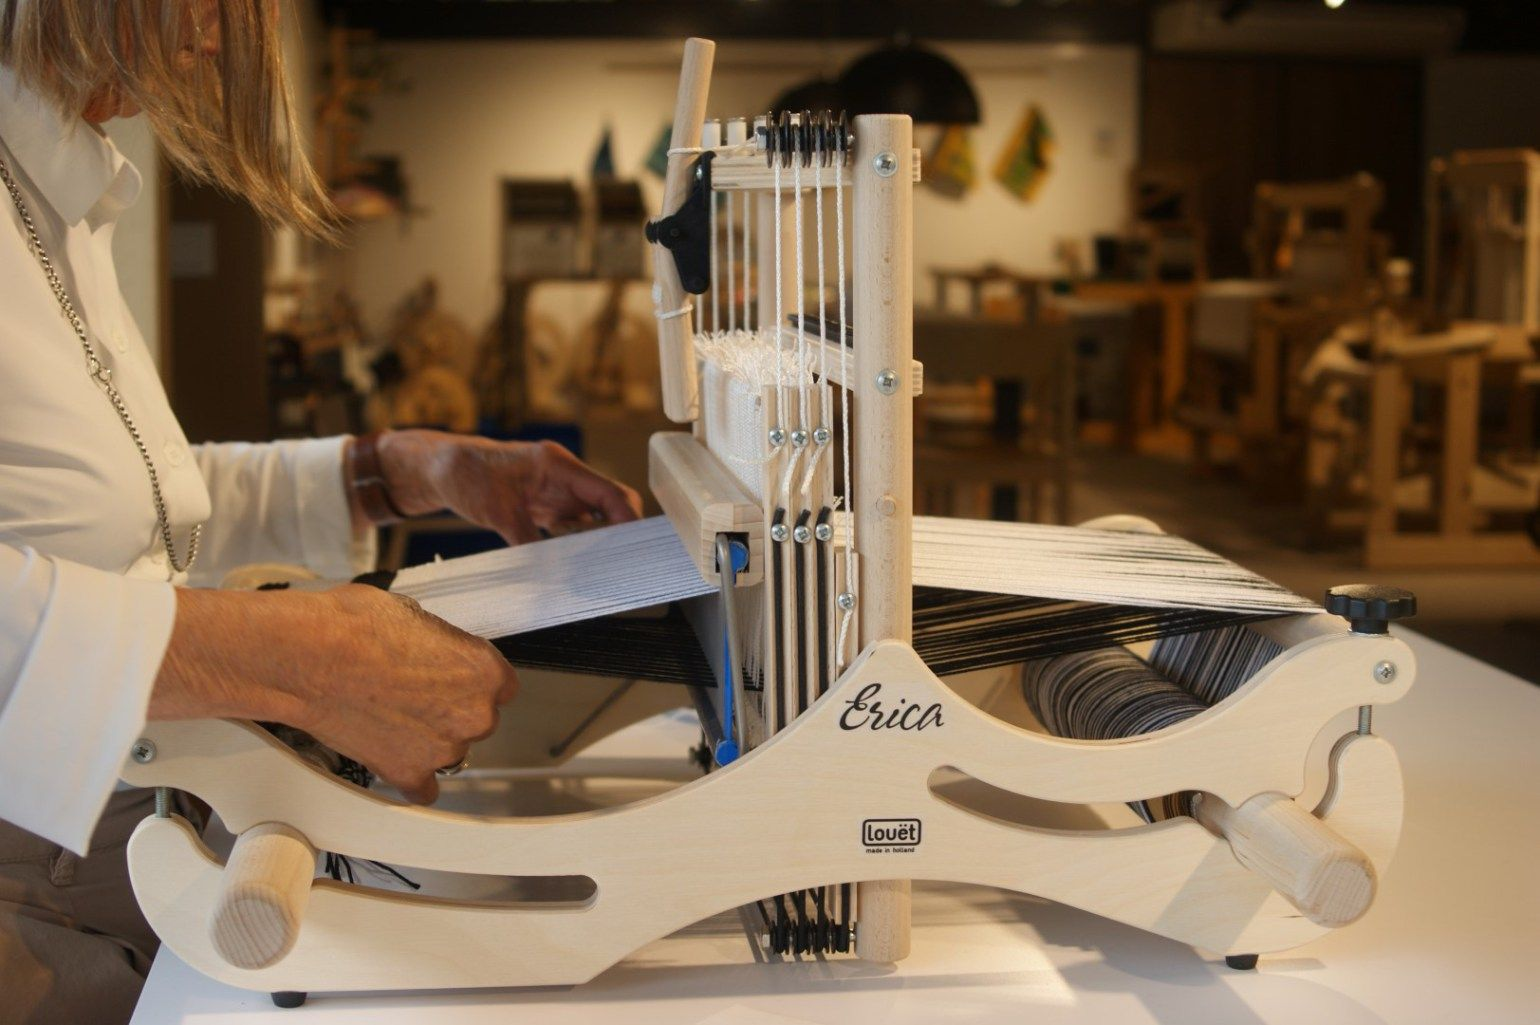 """Erica is a compact table loom with 30 cm (11 ¾"""") weaving"""